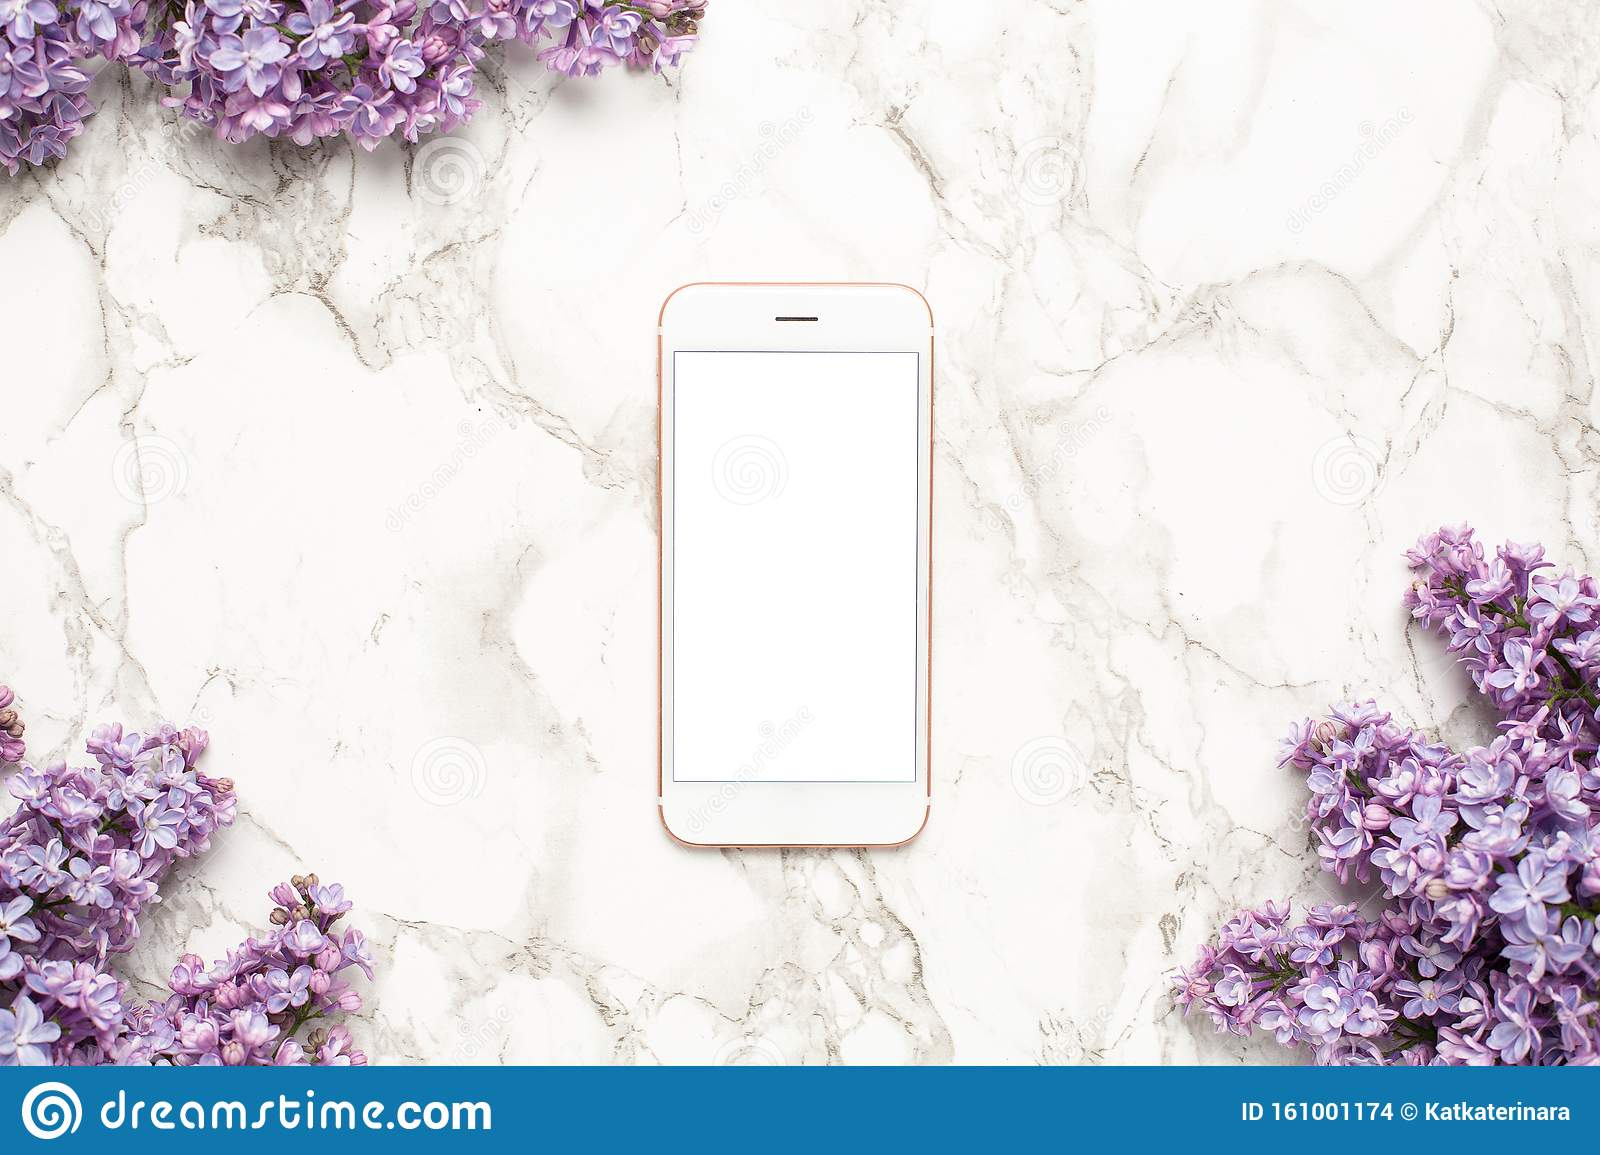 Mobile Phone And Purple Lilac Flowers On Marble Background Simple Business Composition With Spring Flower Stock Photo Image Of Phone Concept 161001174